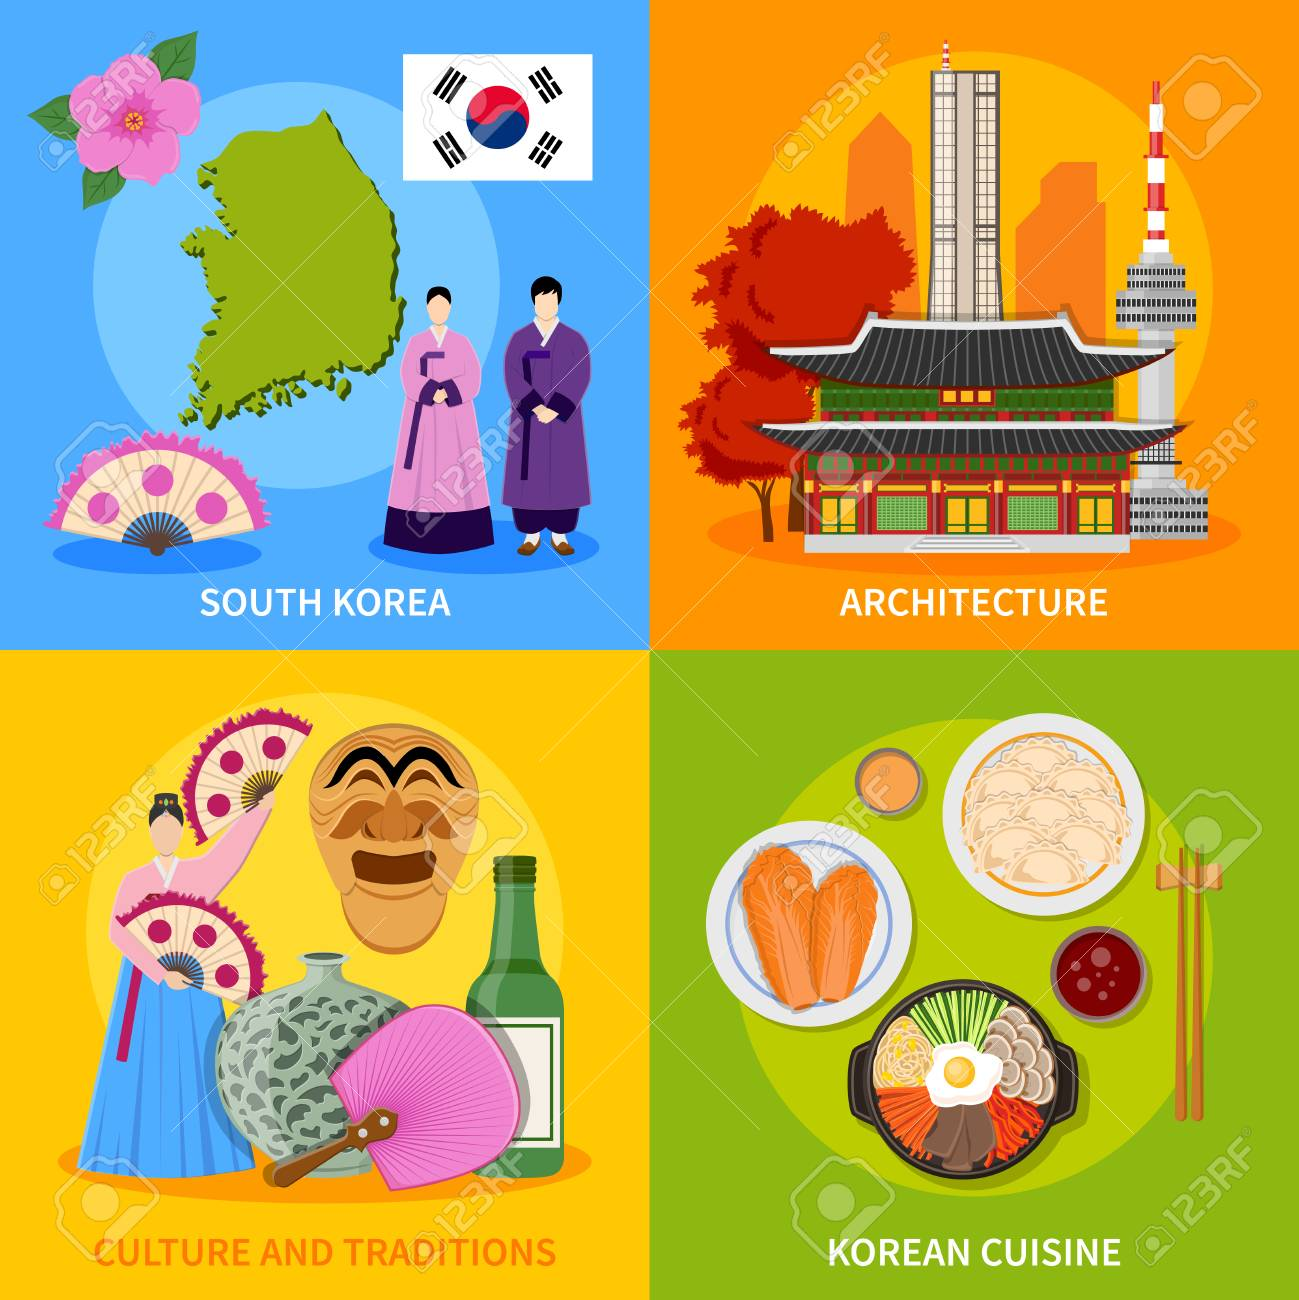 Korean culture traditions symbols cuisine map and landmarks 4 korean culture traditions symbols cuisine map and landmarks 4 flat icons square poster abstract vector isolated biocorpaavc Image collections